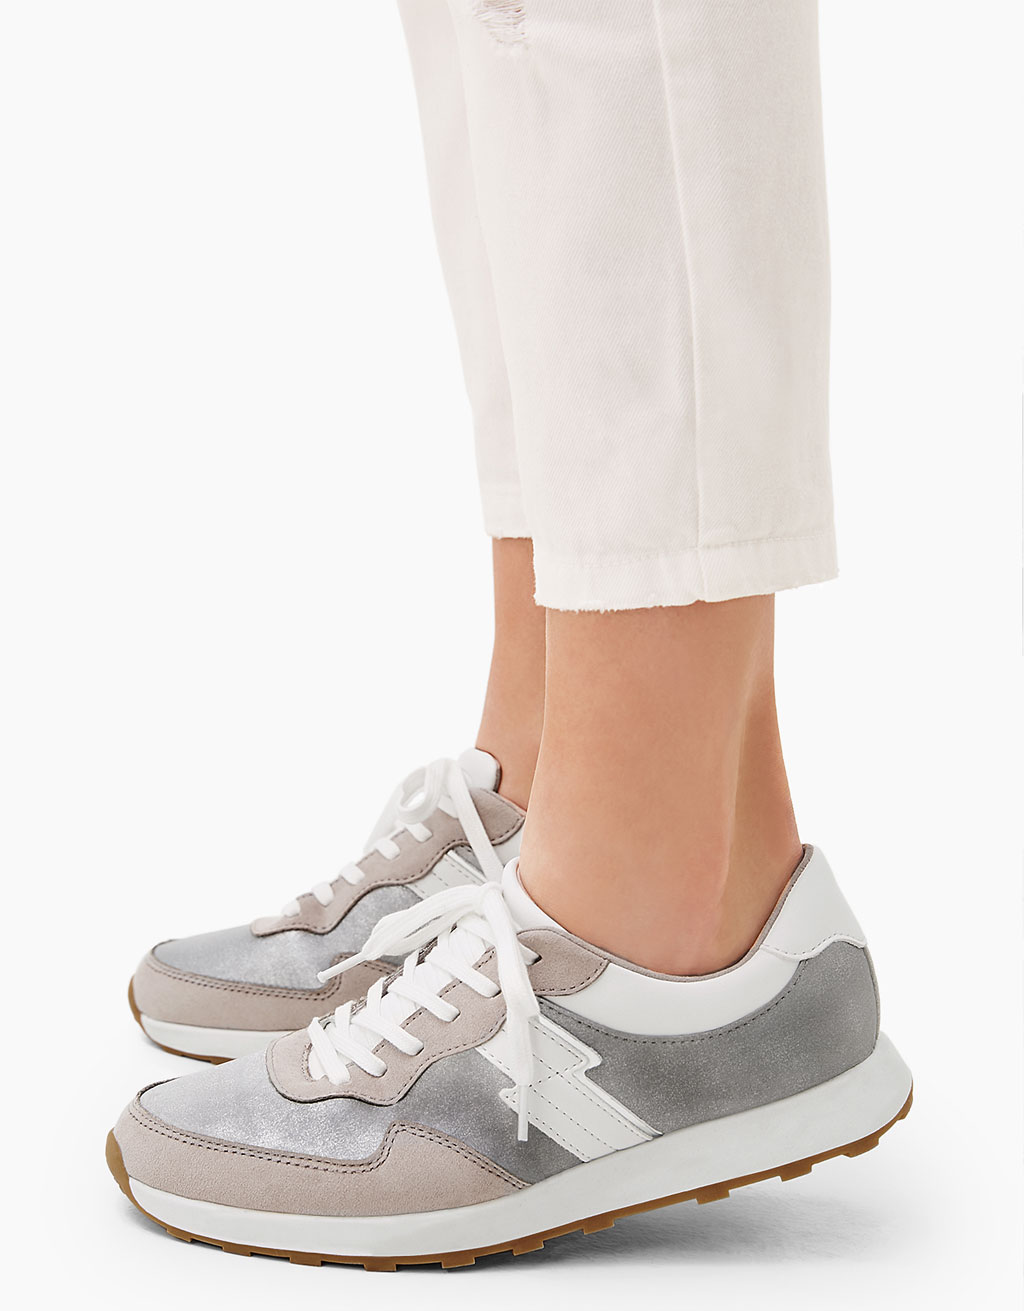 Lace-up shiny combined sneakers